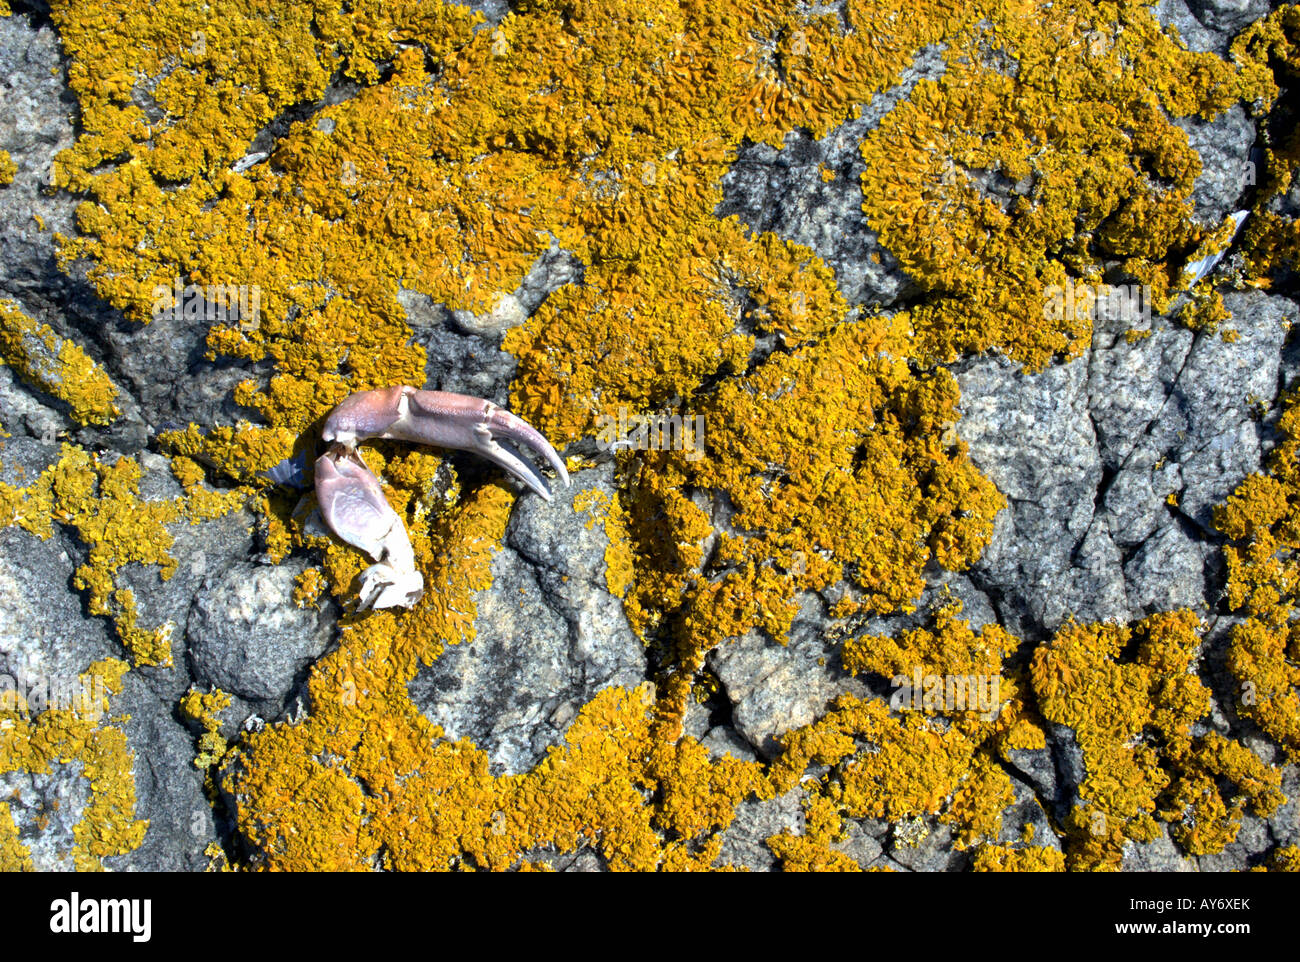 A crab claw has been left by seagulls on lichen-covered granite of a small island, Bohuslan, Sweden - Stock Image